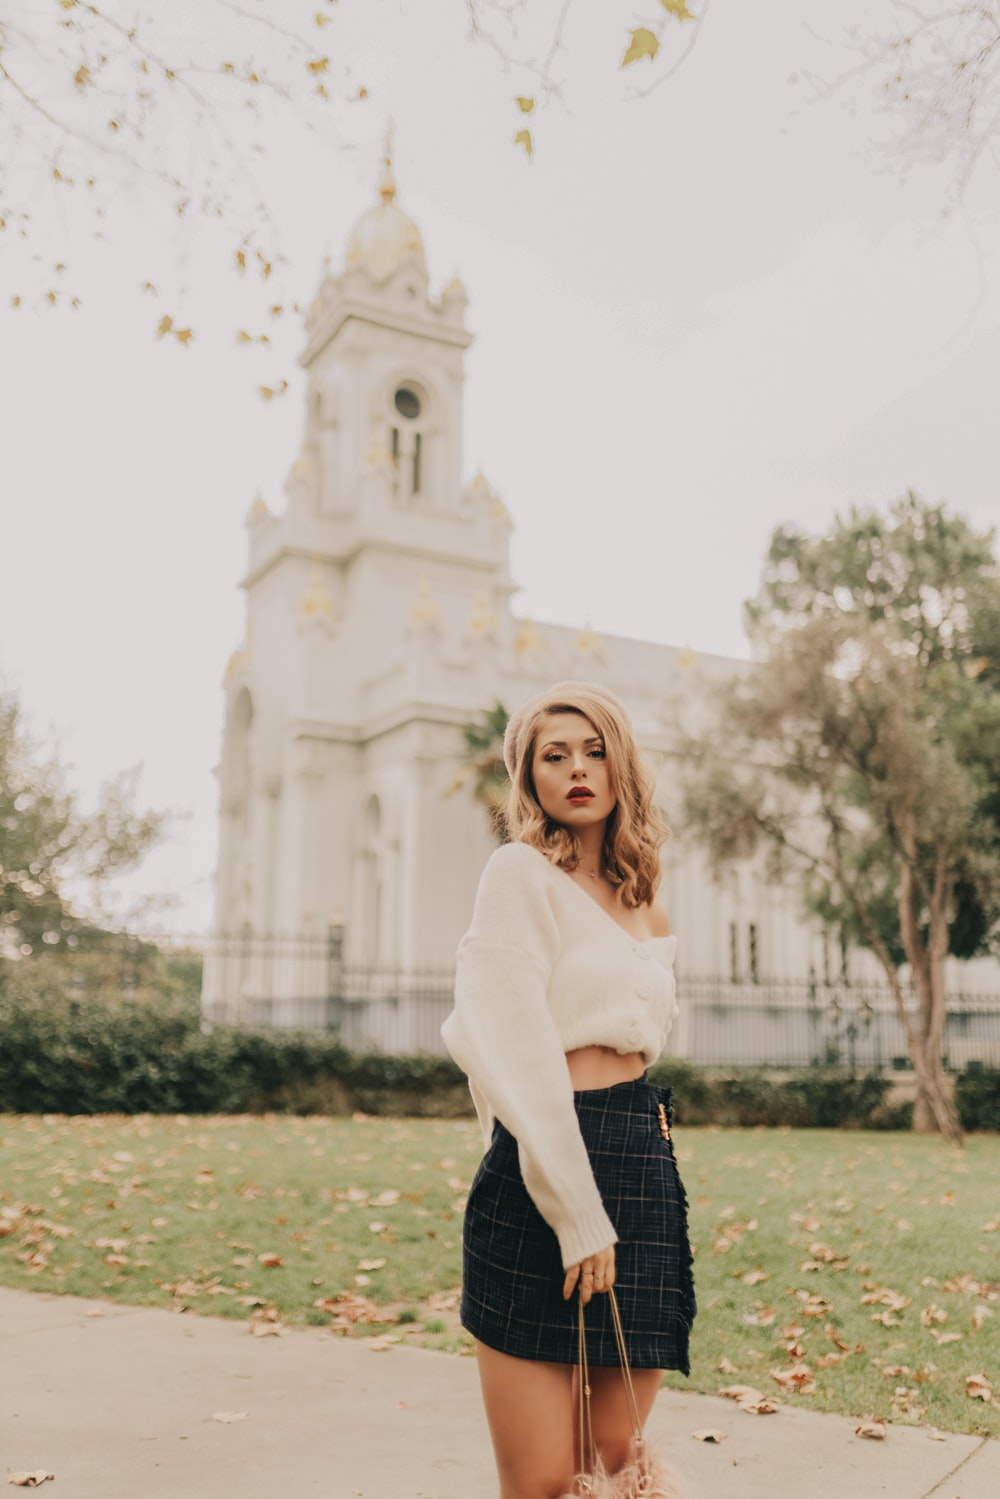 woman wearing white long-sleeved crop top standing near road viewing white church during daytime